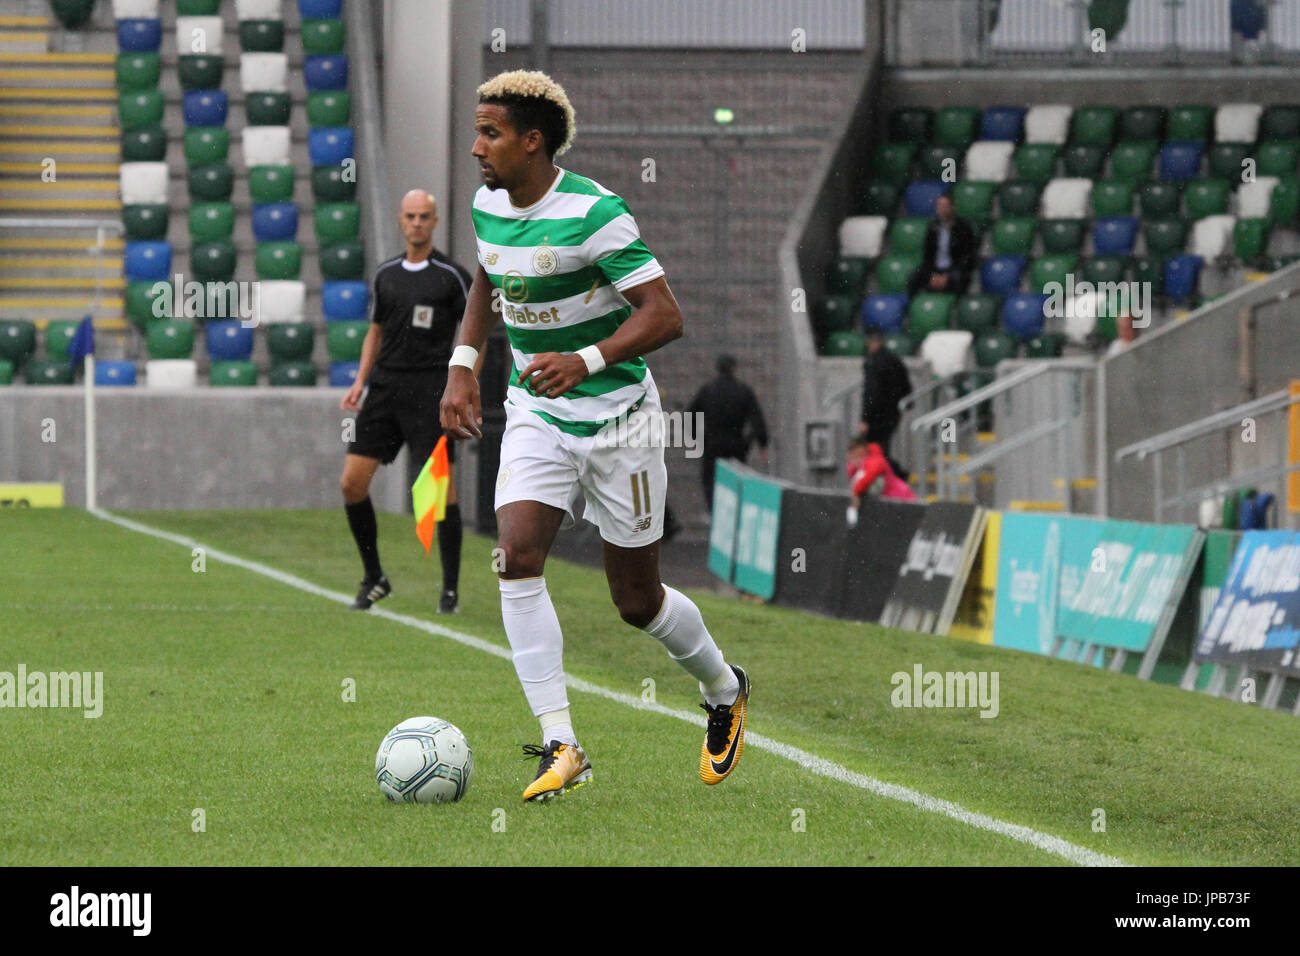 Windsor Park, Belfast, Northern Ireland. 14th July. Linfield 0 Celtic 2. Celtic's Scott Sinclair (11) in action. - Stock Image